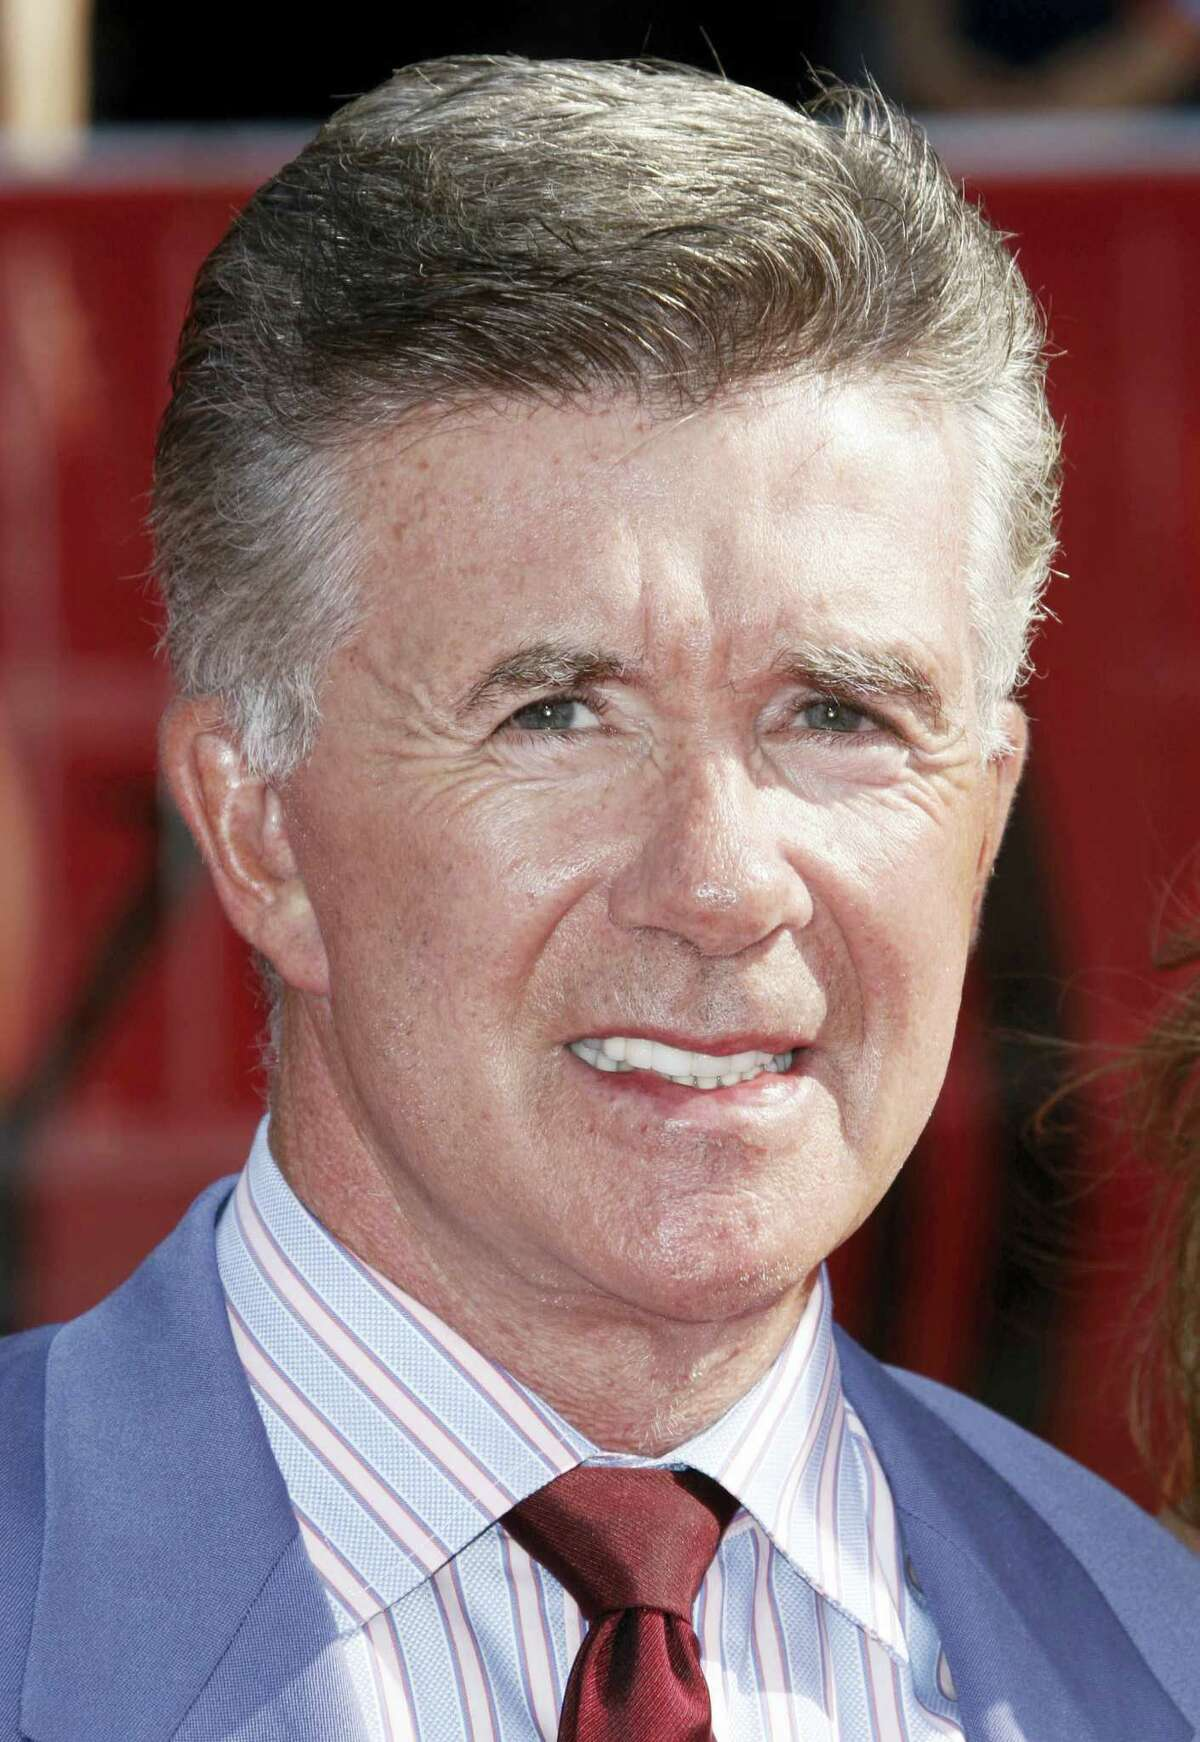 Alan Thicke arrives at the ESPYs Awards in Los Angeles in 2008. On Tuesday, Dec. 13, 2016, A publicist said the actor has died at the age of 69.